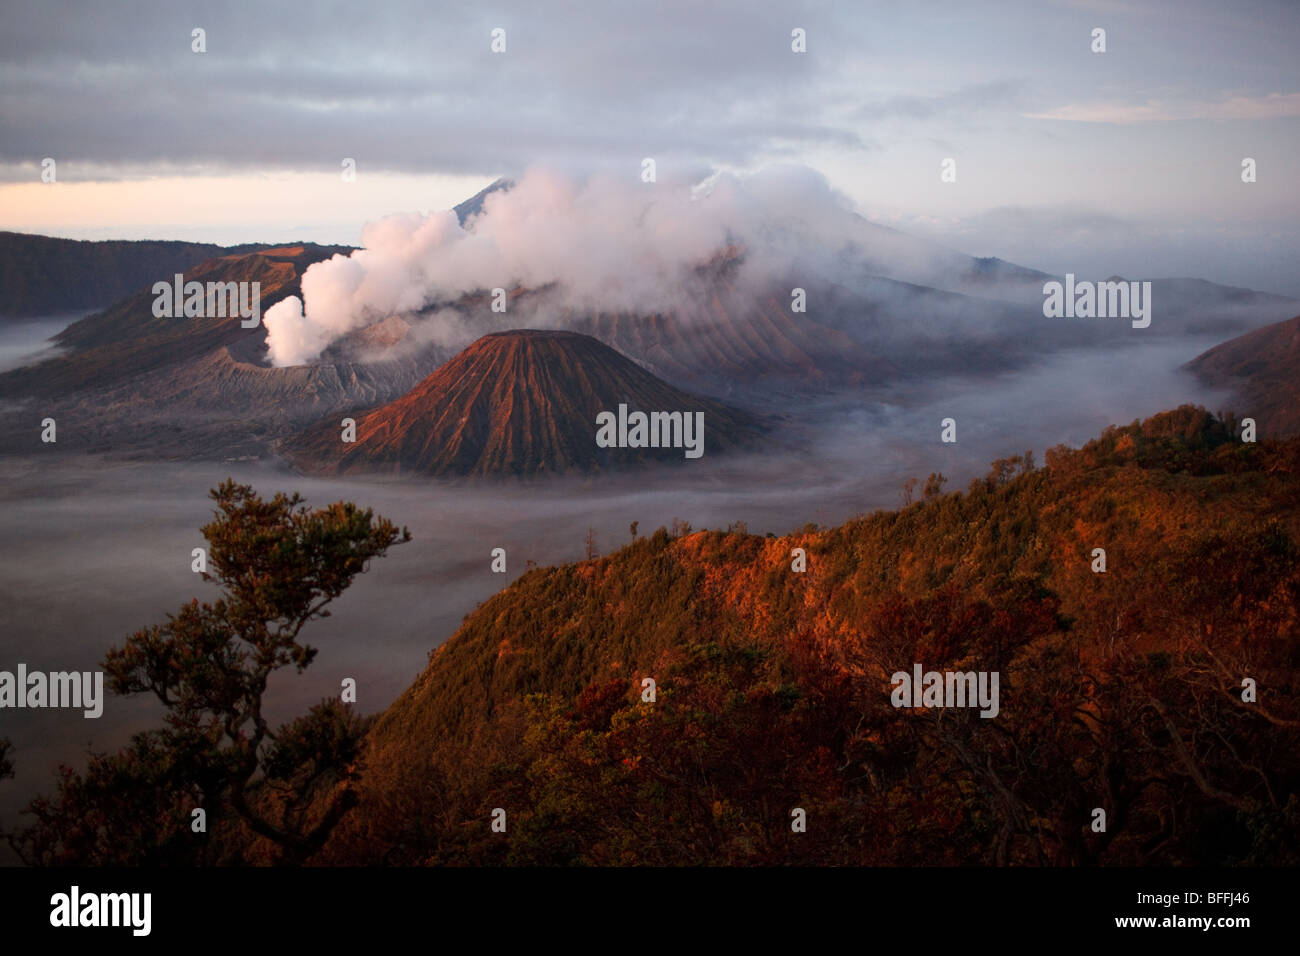 Mount Bromo and other volcanoes seen from Mount Penanjakan, Java island, Indonesia - Stock Image